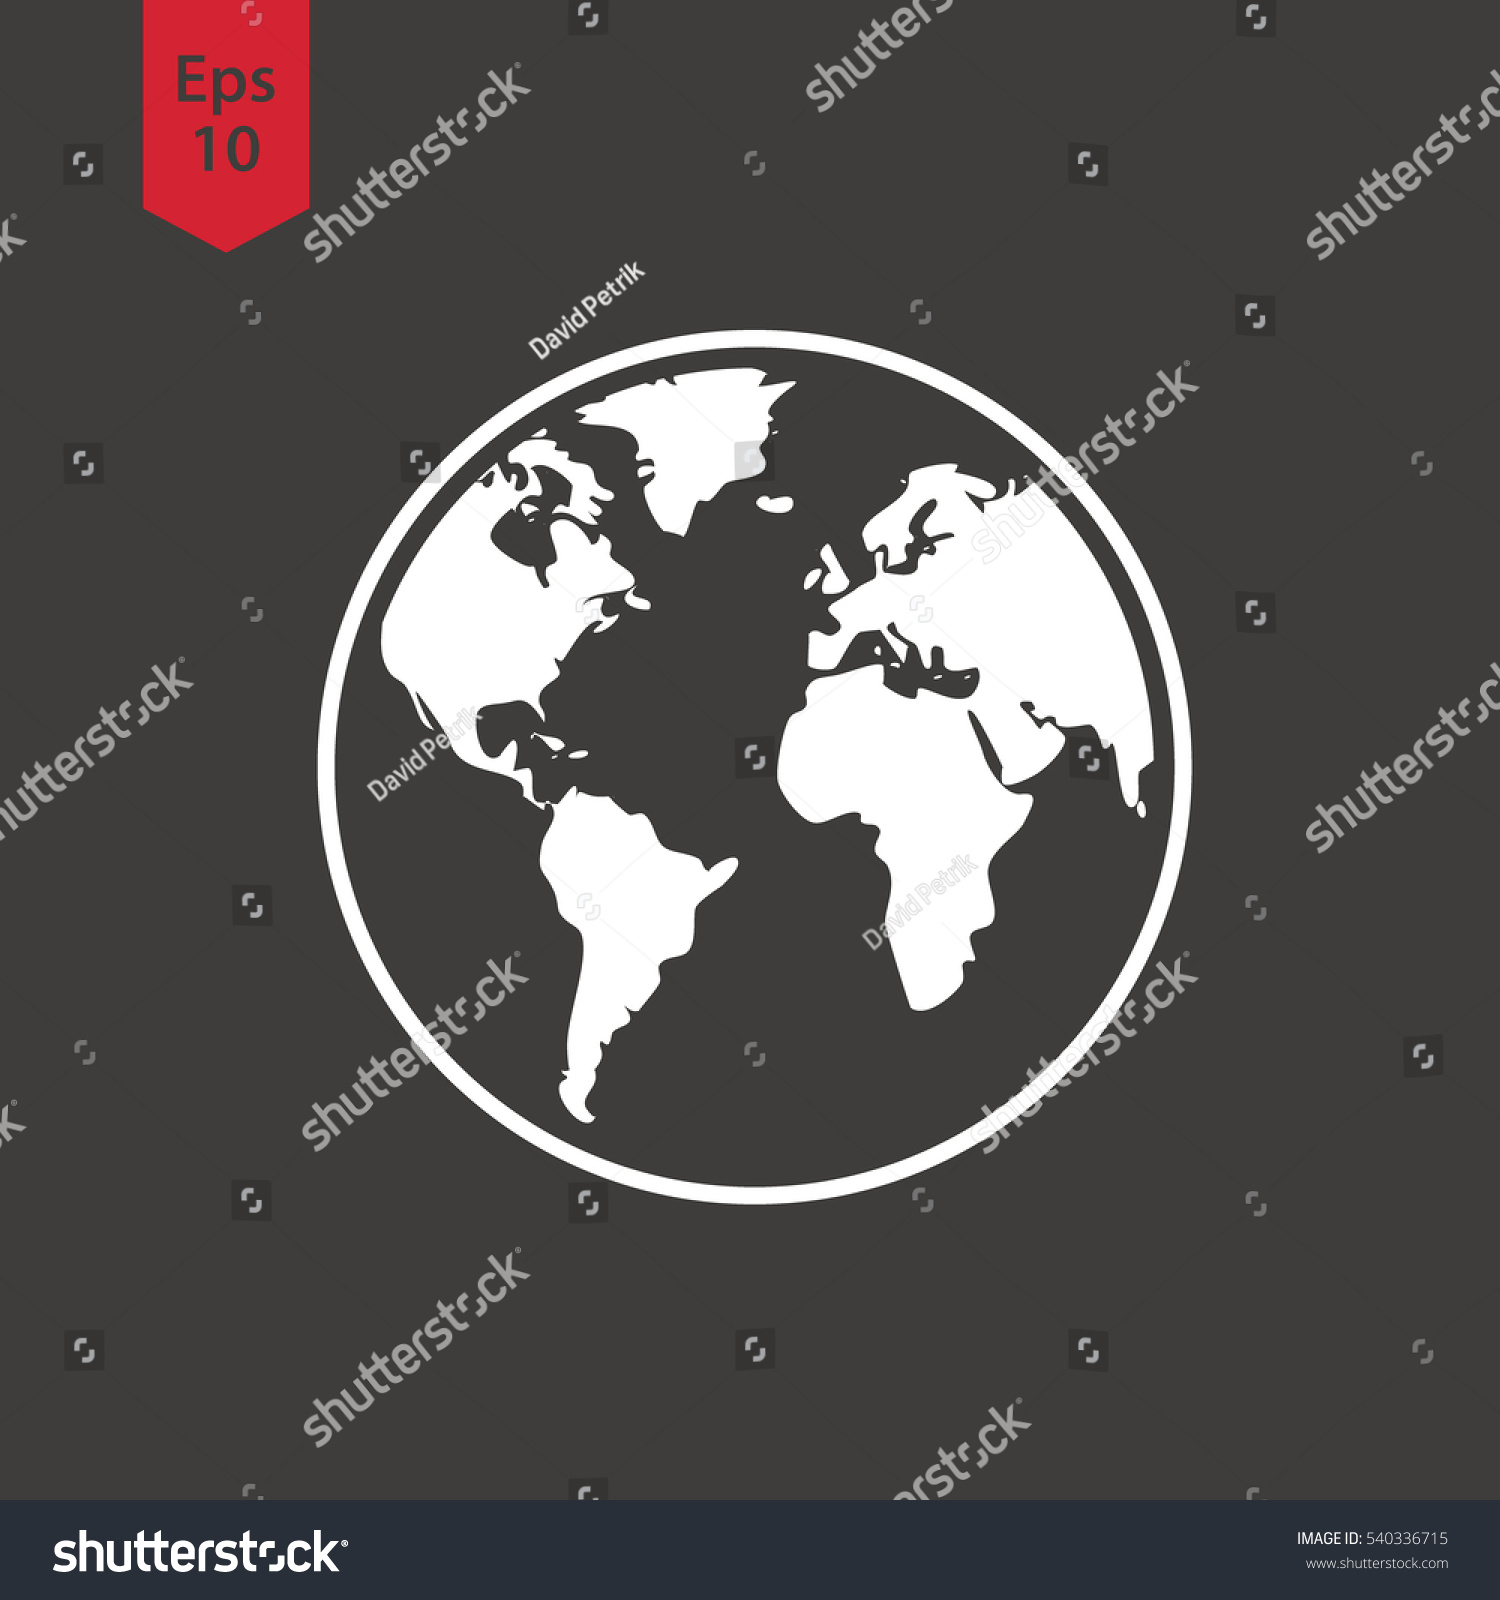 Simple globe icons earth flat sign stock vector 540336715 simple globe icons earth flat sign symbol of world map vector illustration biocorpaavc